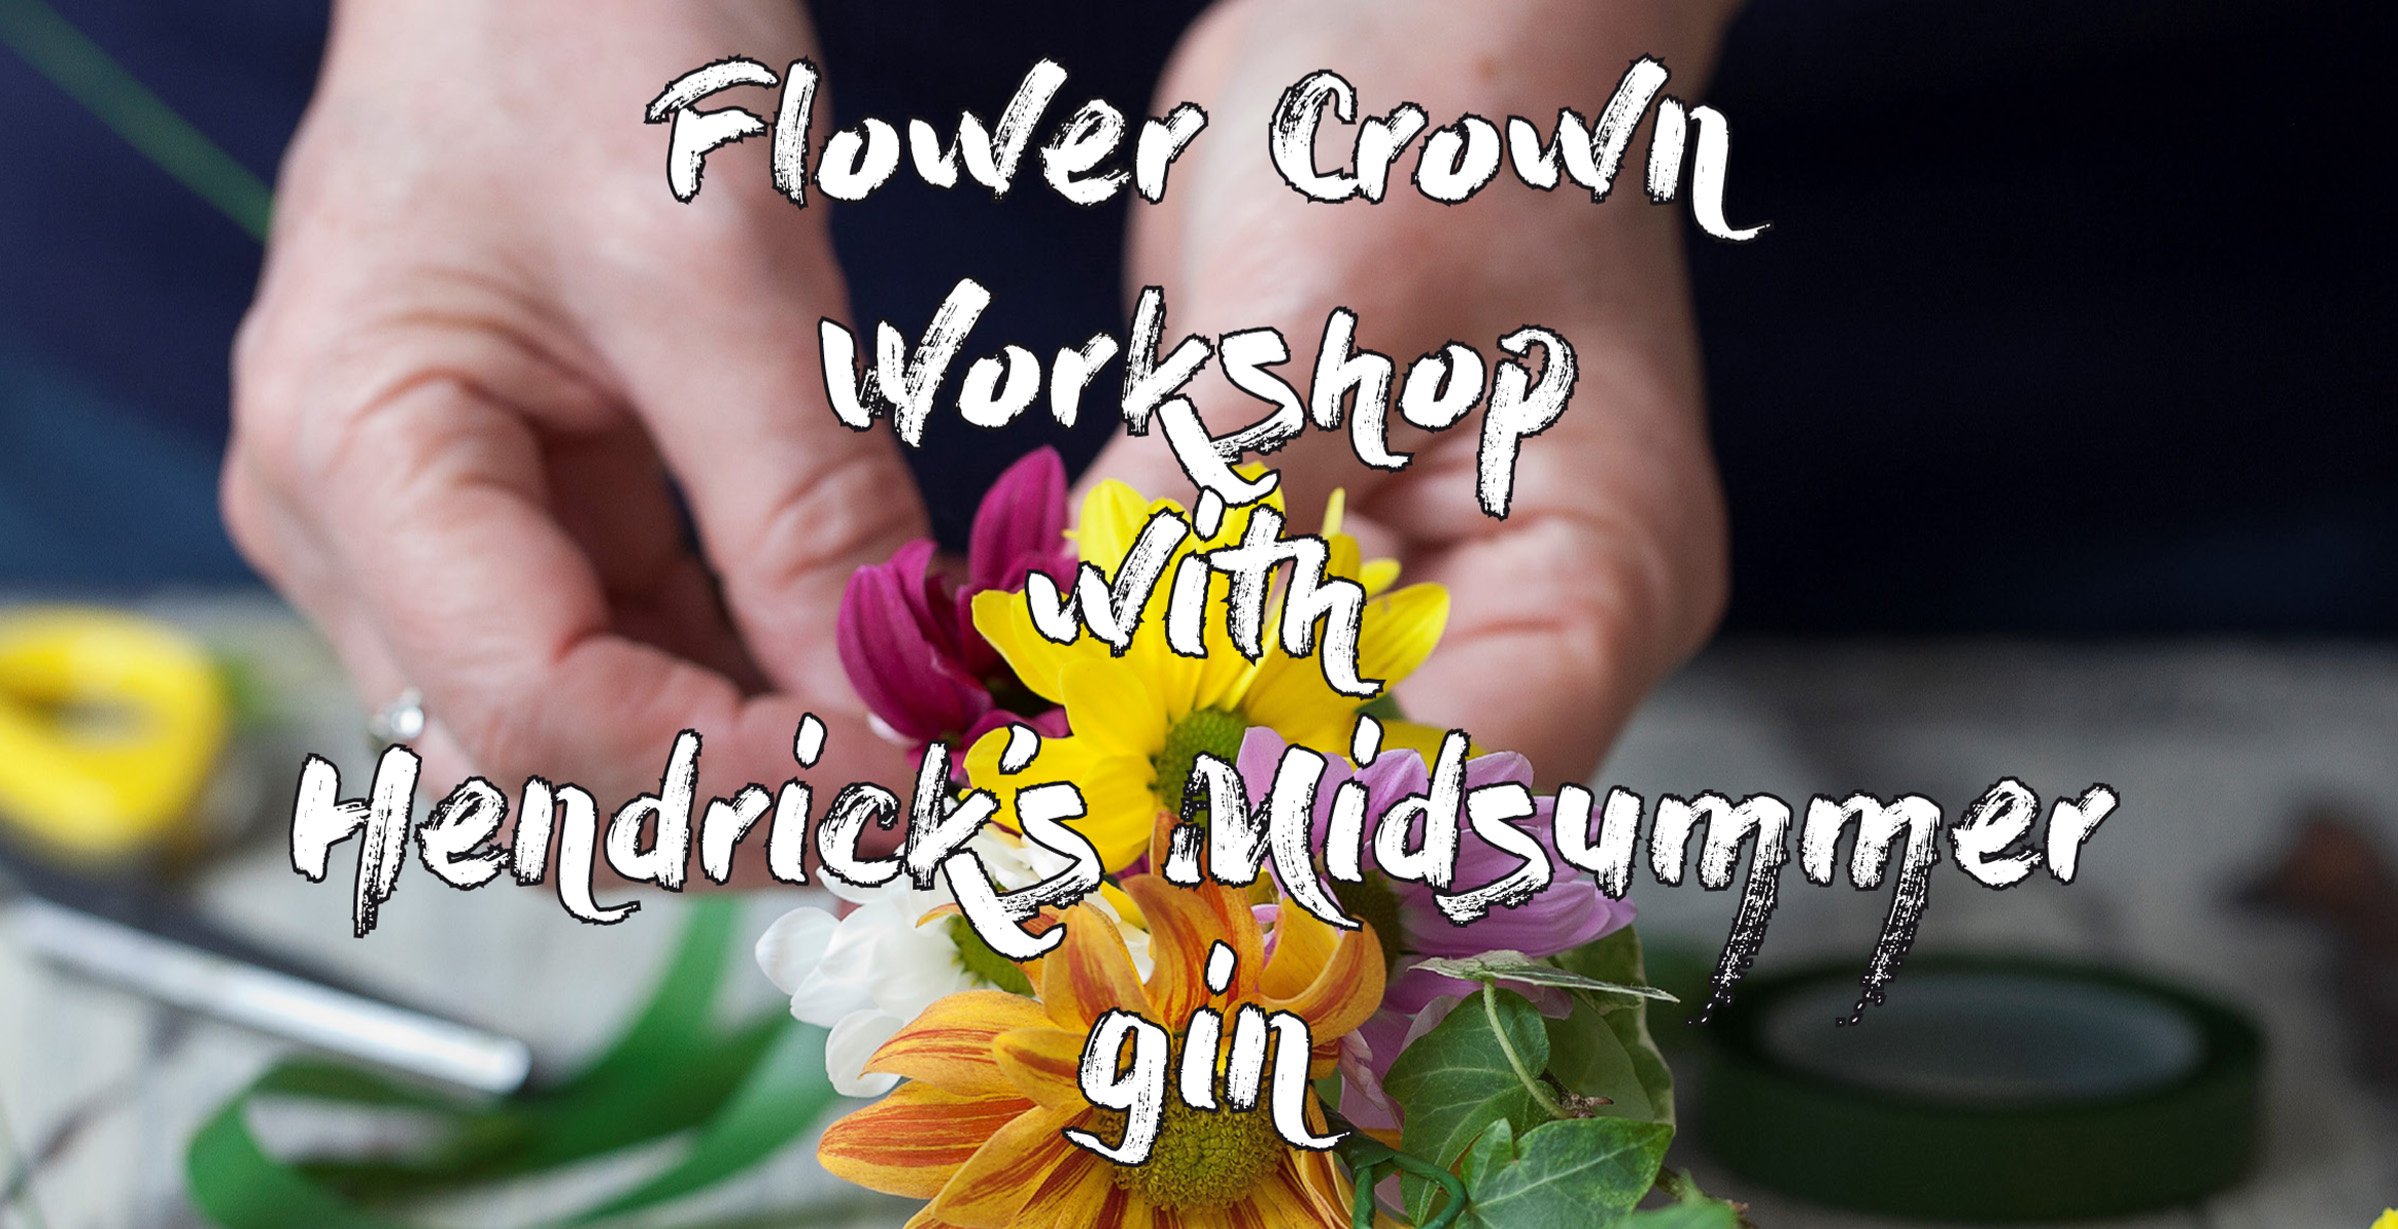 Craft and Cocktails; Flower Crown Workshop with Hendricks Midsummer Gin